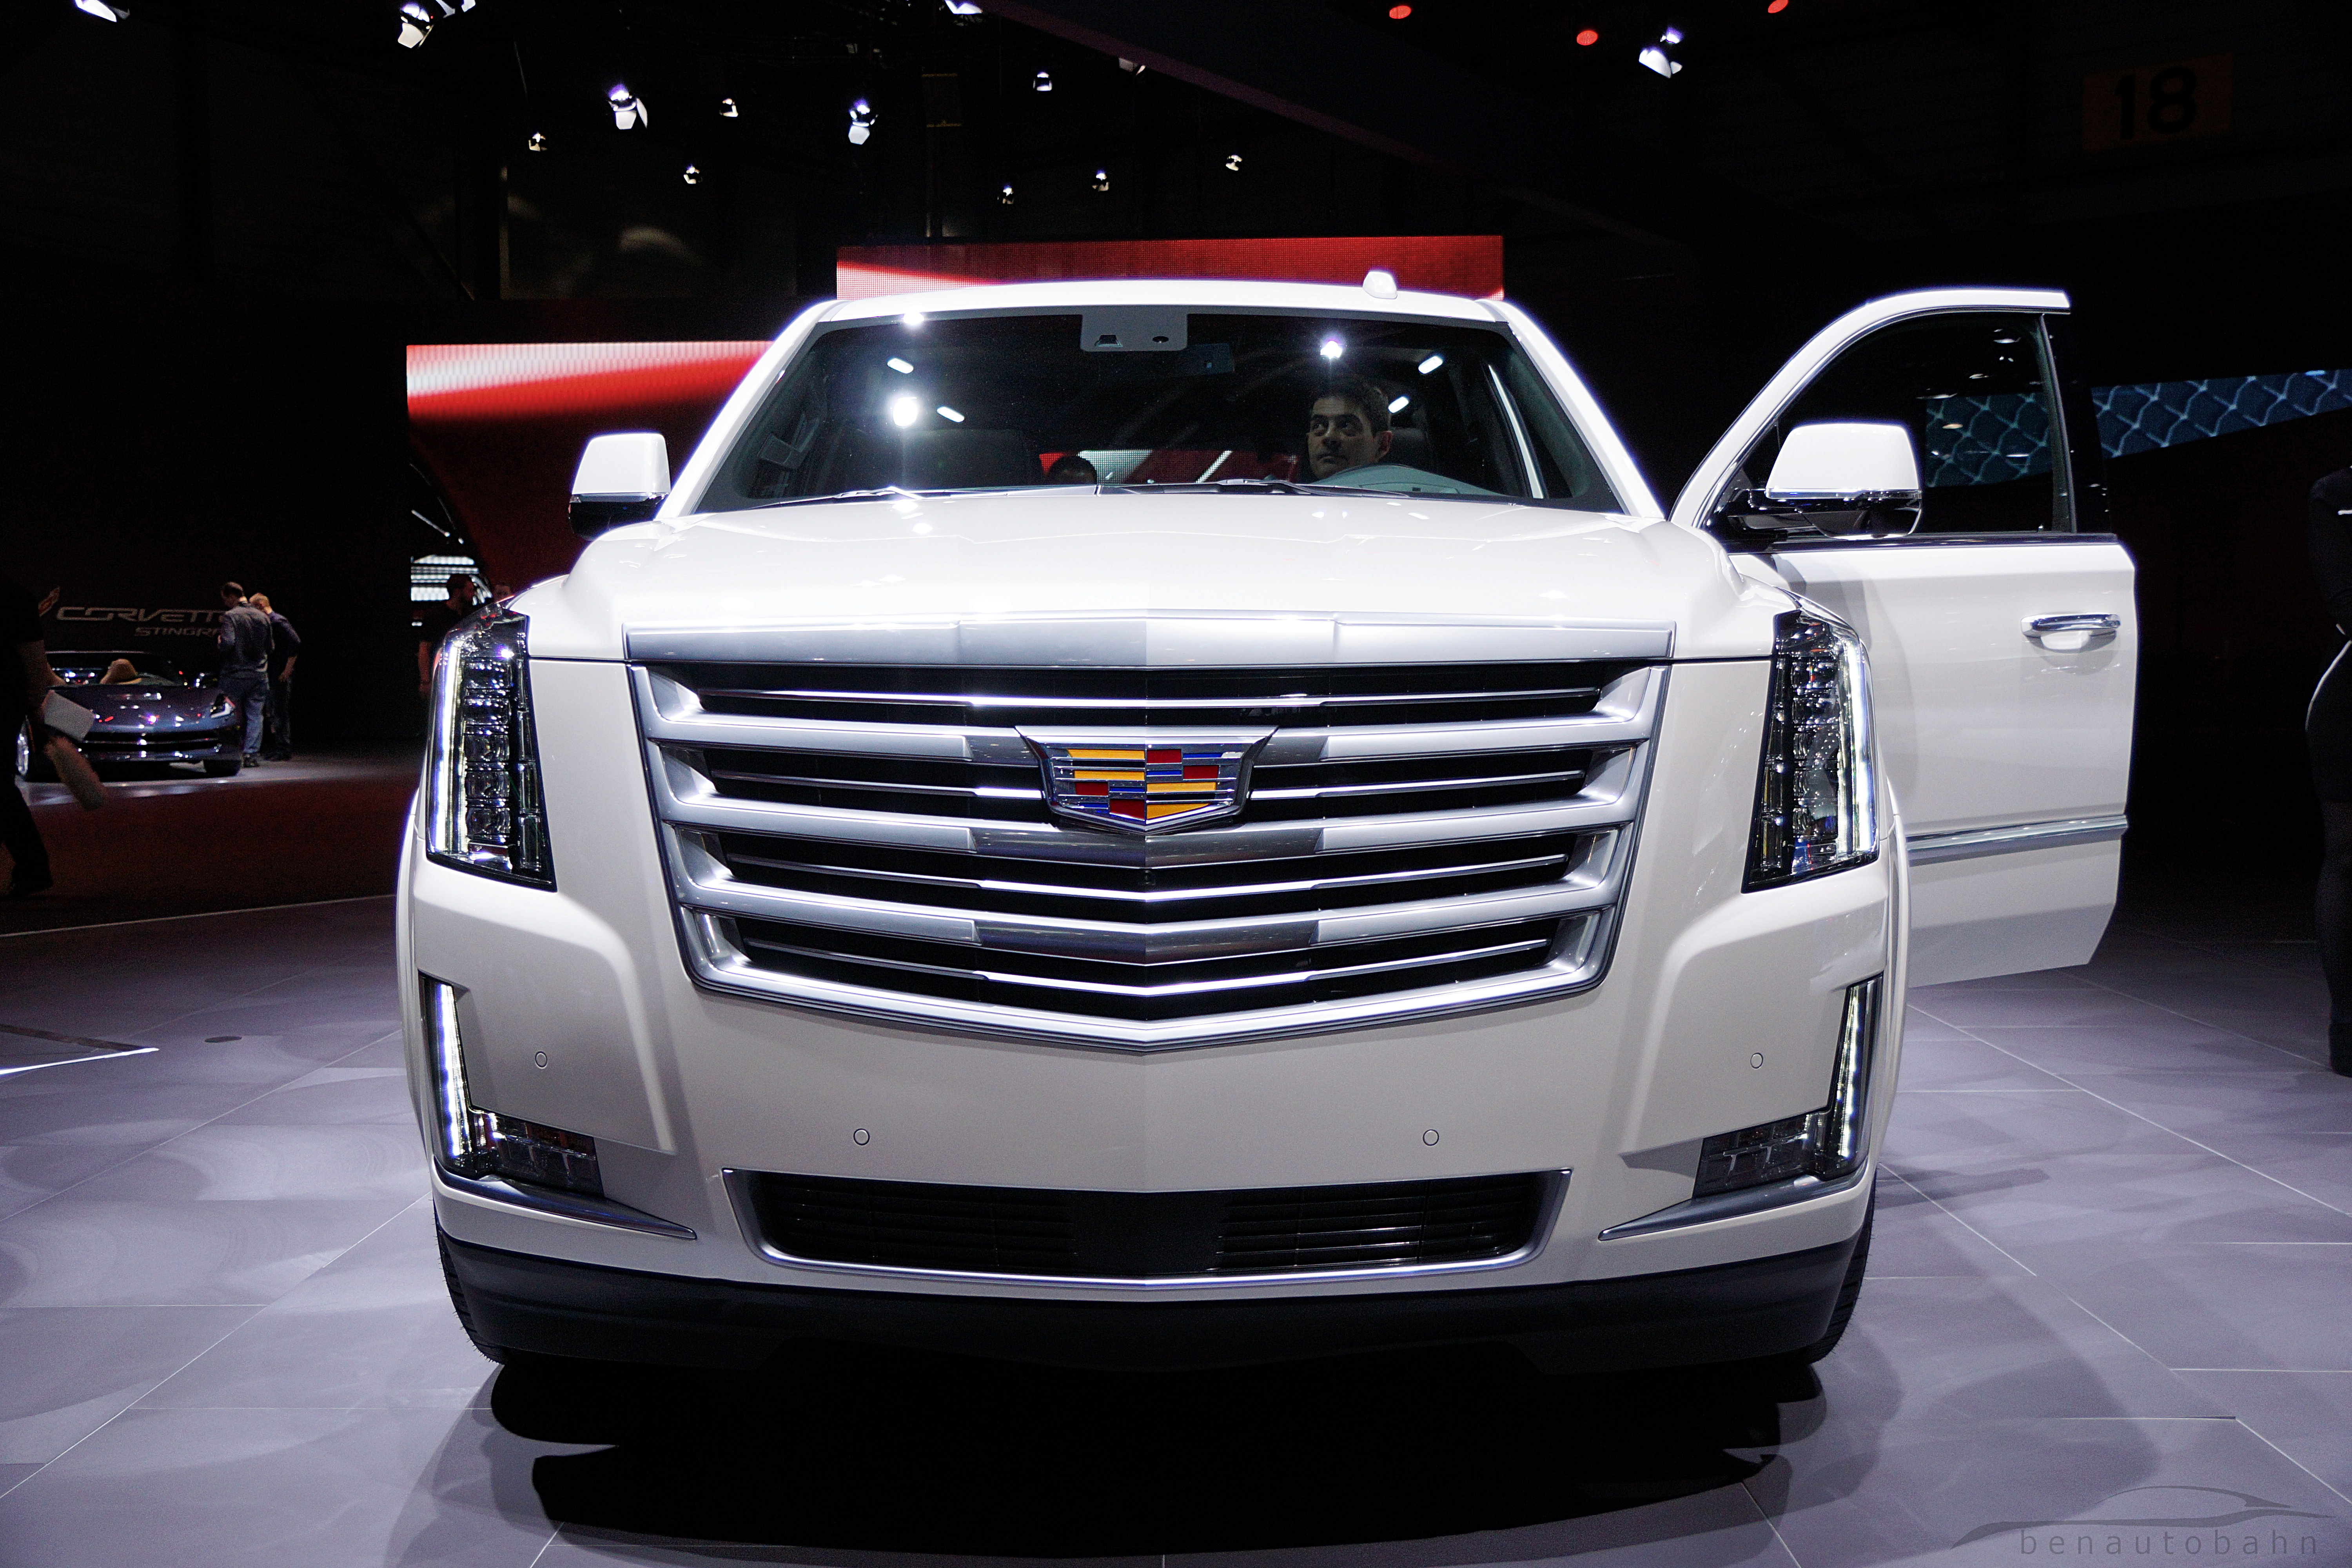 The new Escalade is a sale success for GM.